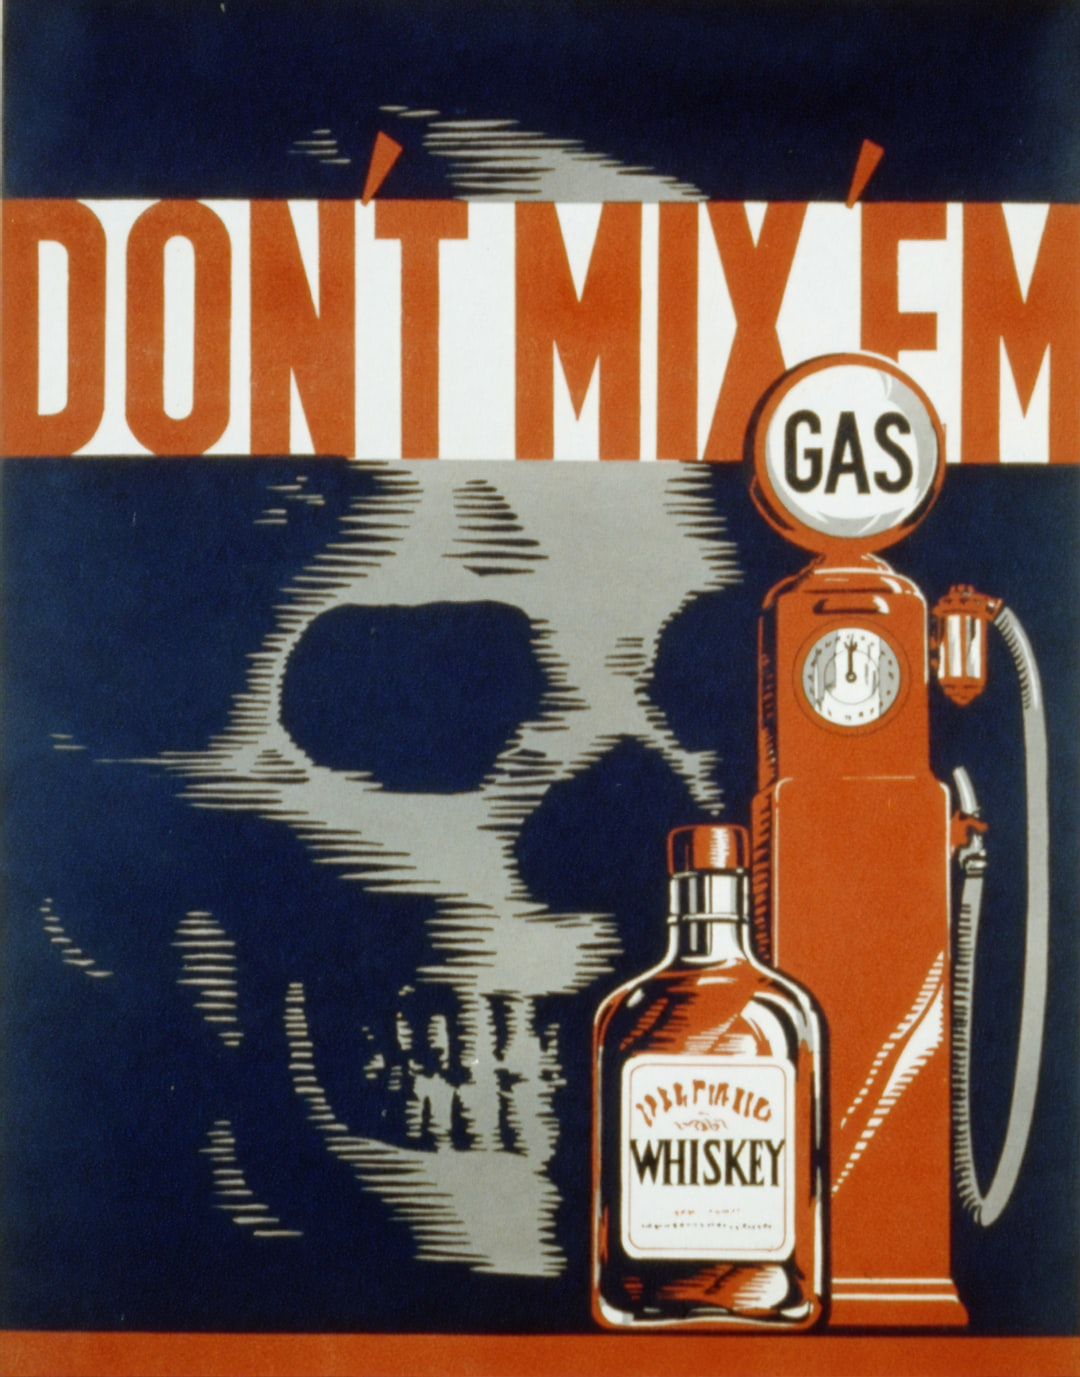 Don't mix 'em. Poster by artist Robert Lachenmann, for the Pennsylvania: WPA Federal Art Project, [1936 and 1940]. From the Work Projects Administration Poster Collection. Library of Congress Prints & Photographs Division.   https://www.loc.gov/item/93511155/